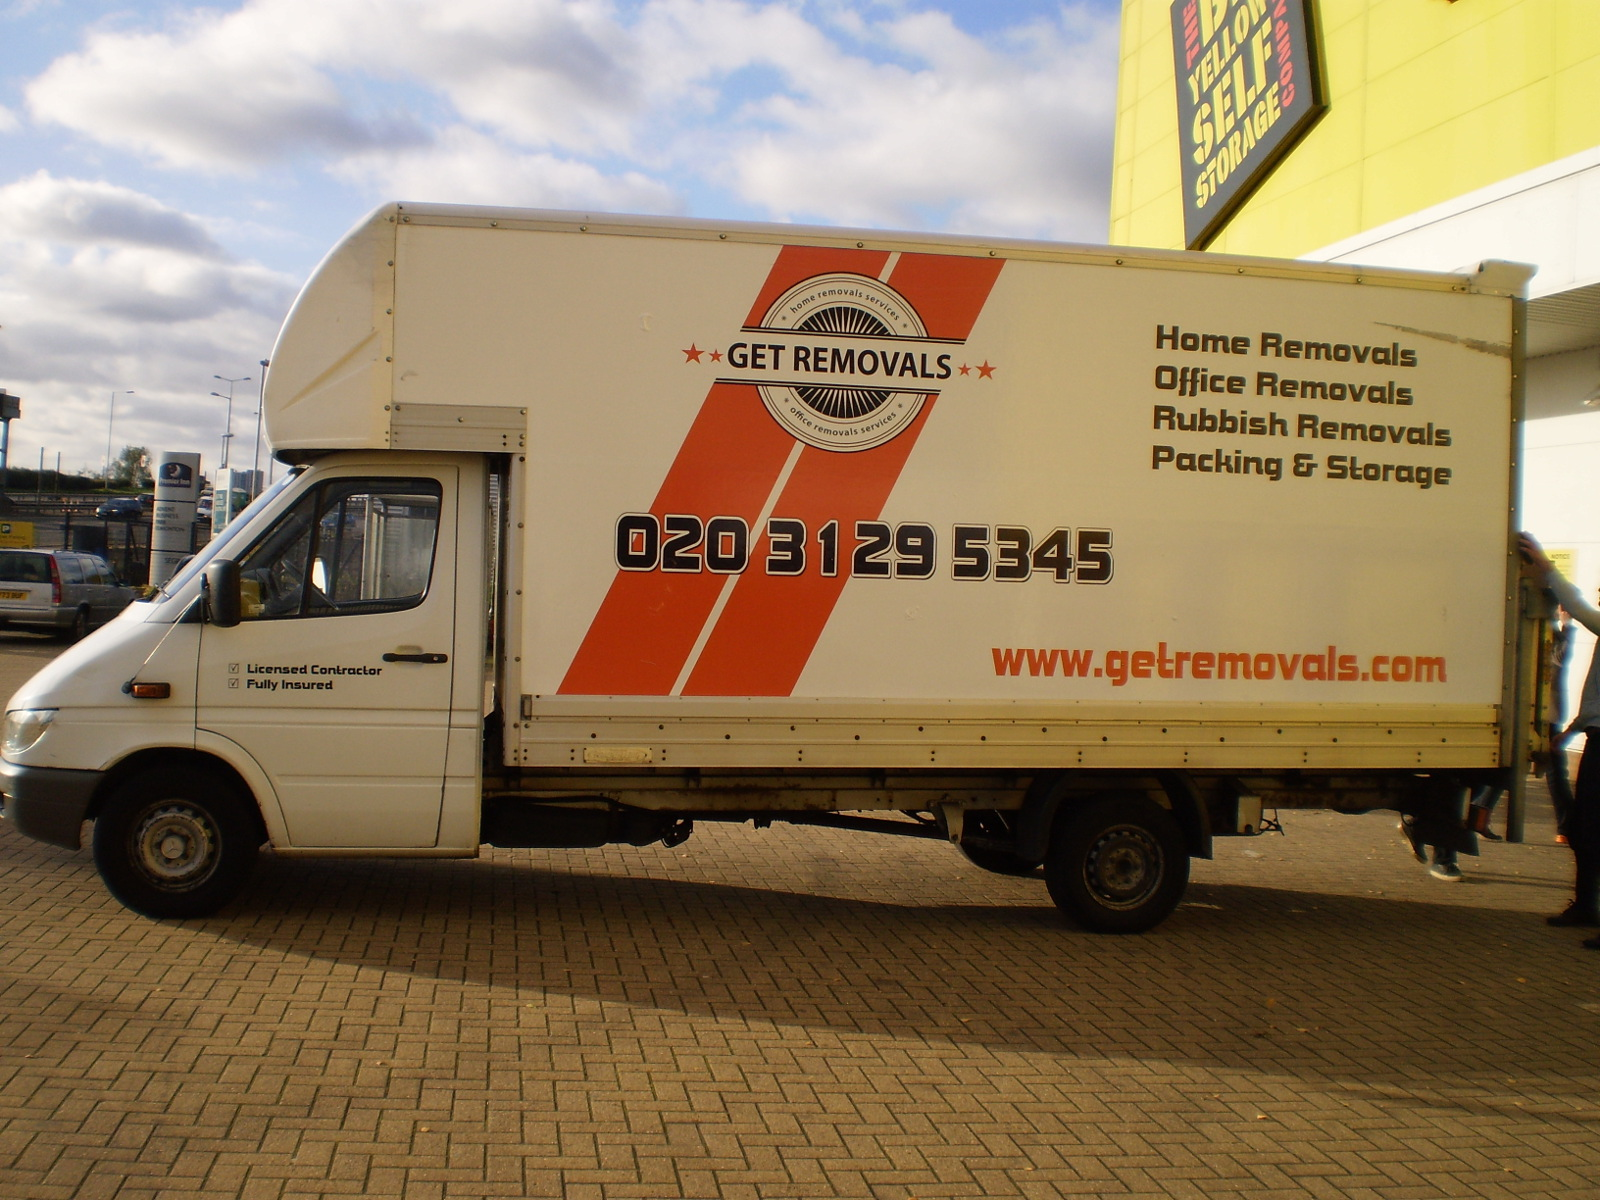 Get Removals London The Trusted Removal Firm In London